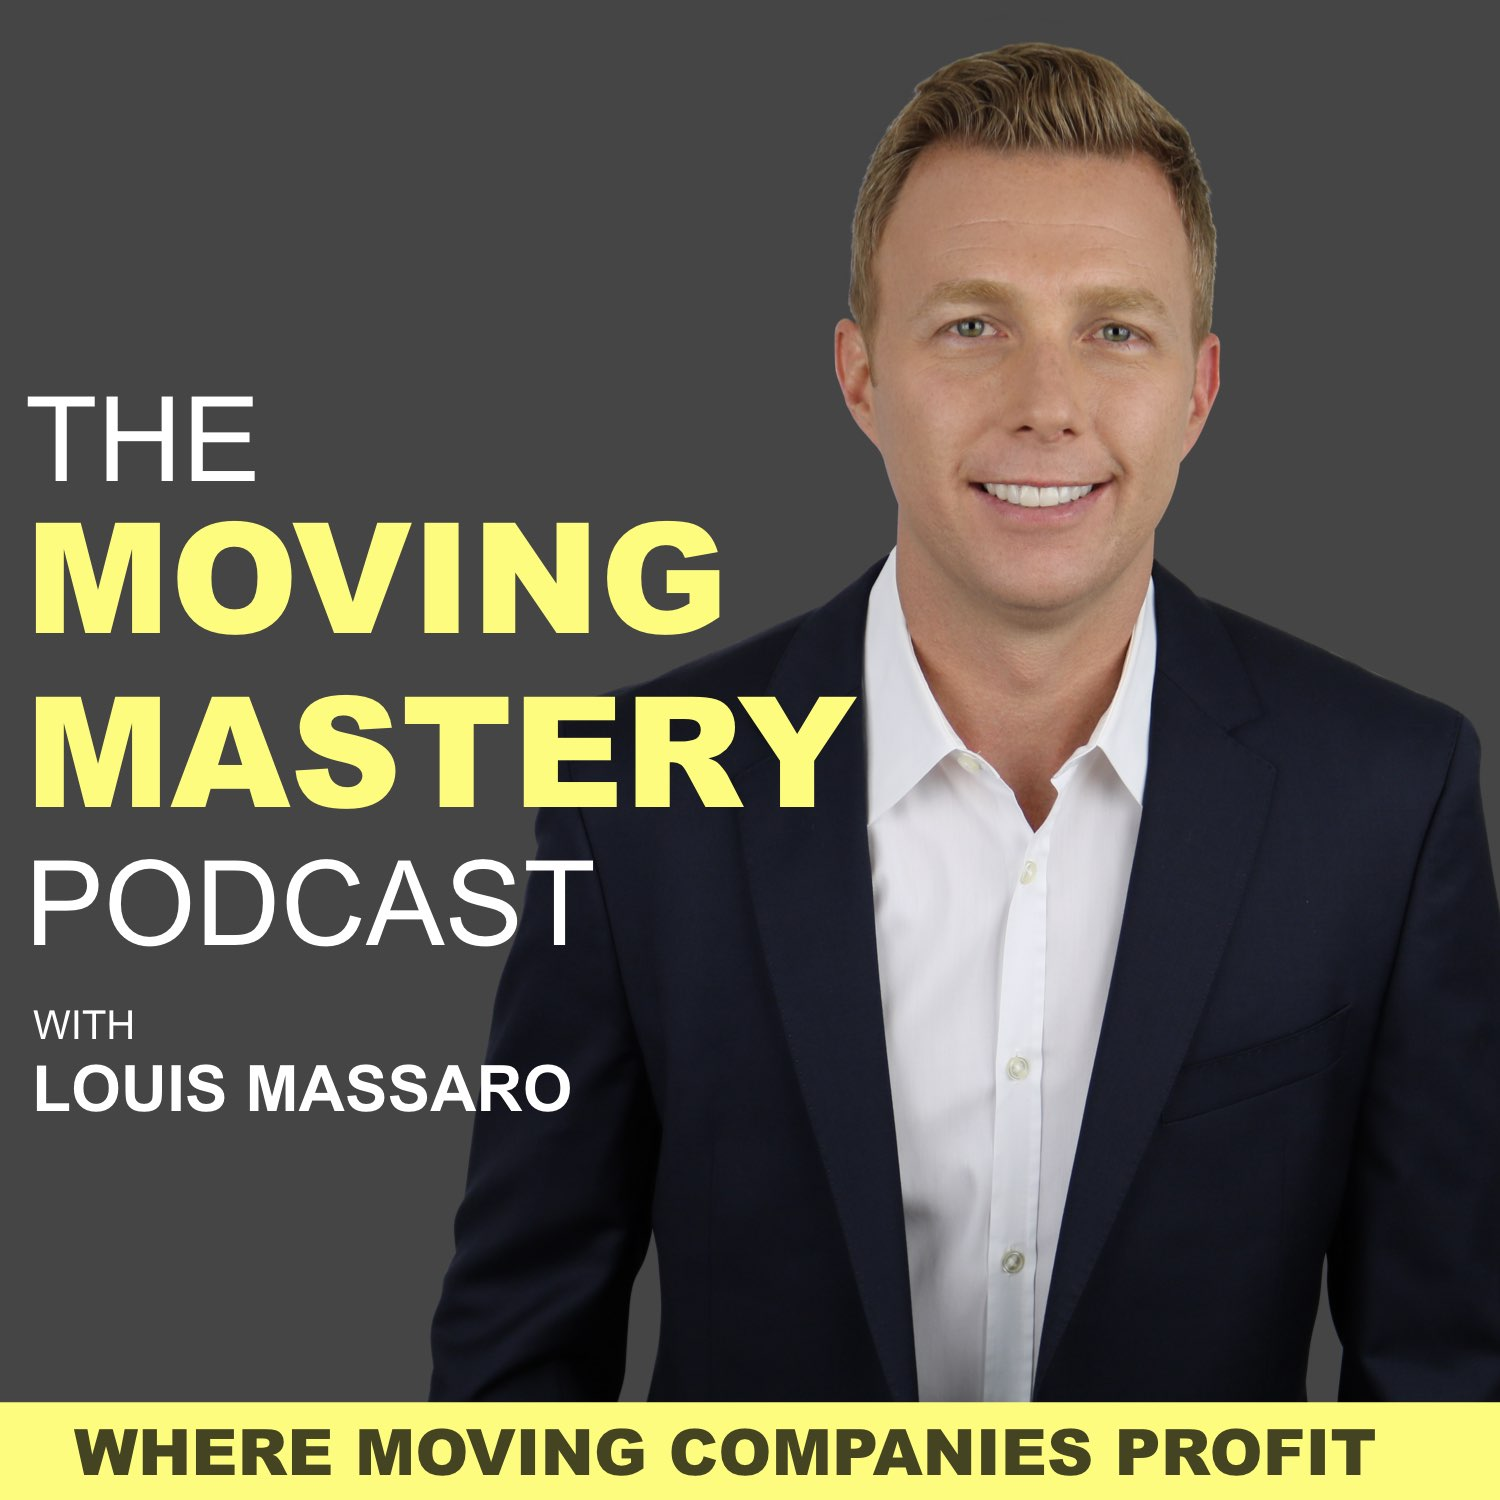 The Moving Mastery Podcast with Louis Massaro  show art